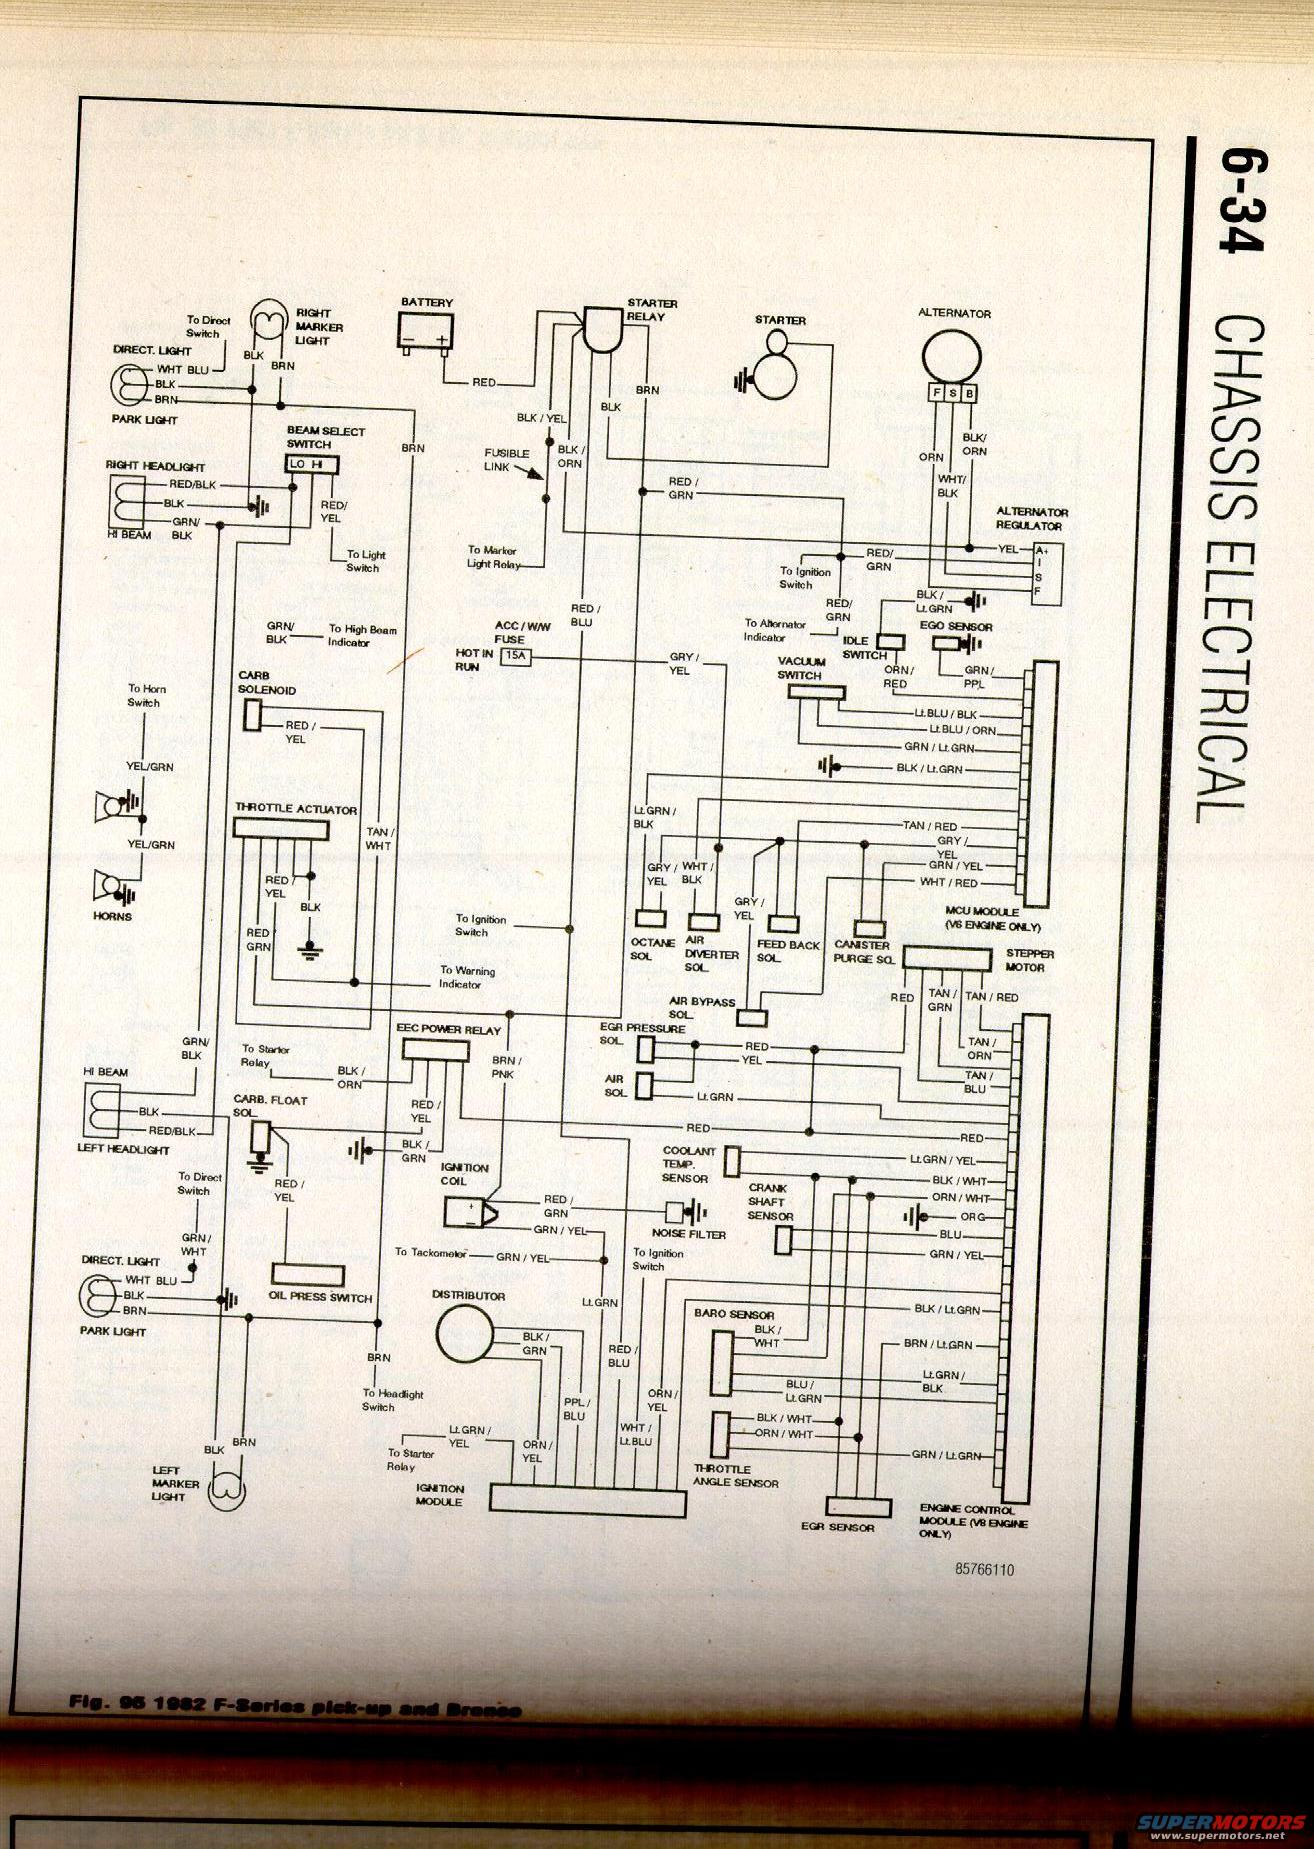 1982 Ford F150 Wiring Diagram Manual Of Ignition Bronco Misc Picture Supermotors Net Alternator